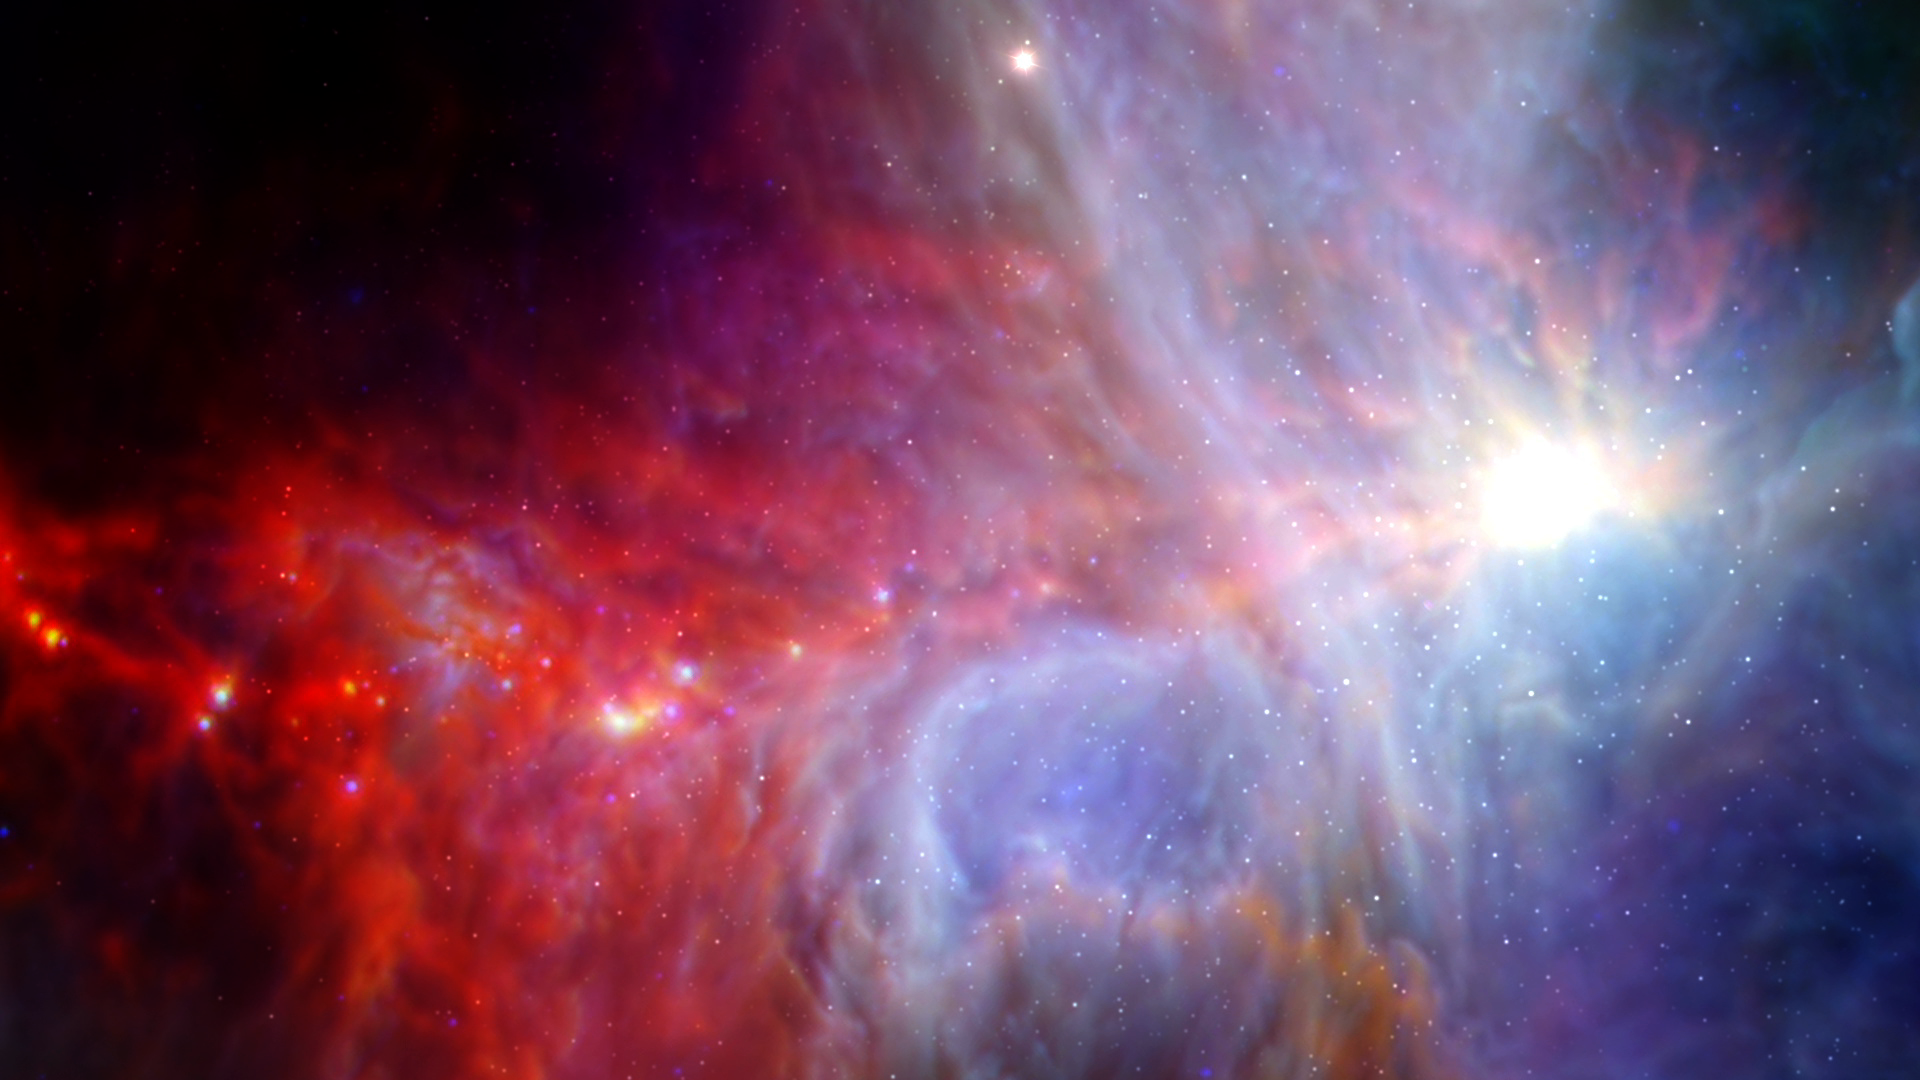 color-swirl-in-space_WkCXwr3lS-Apple ProRes 422 1080p2398.png